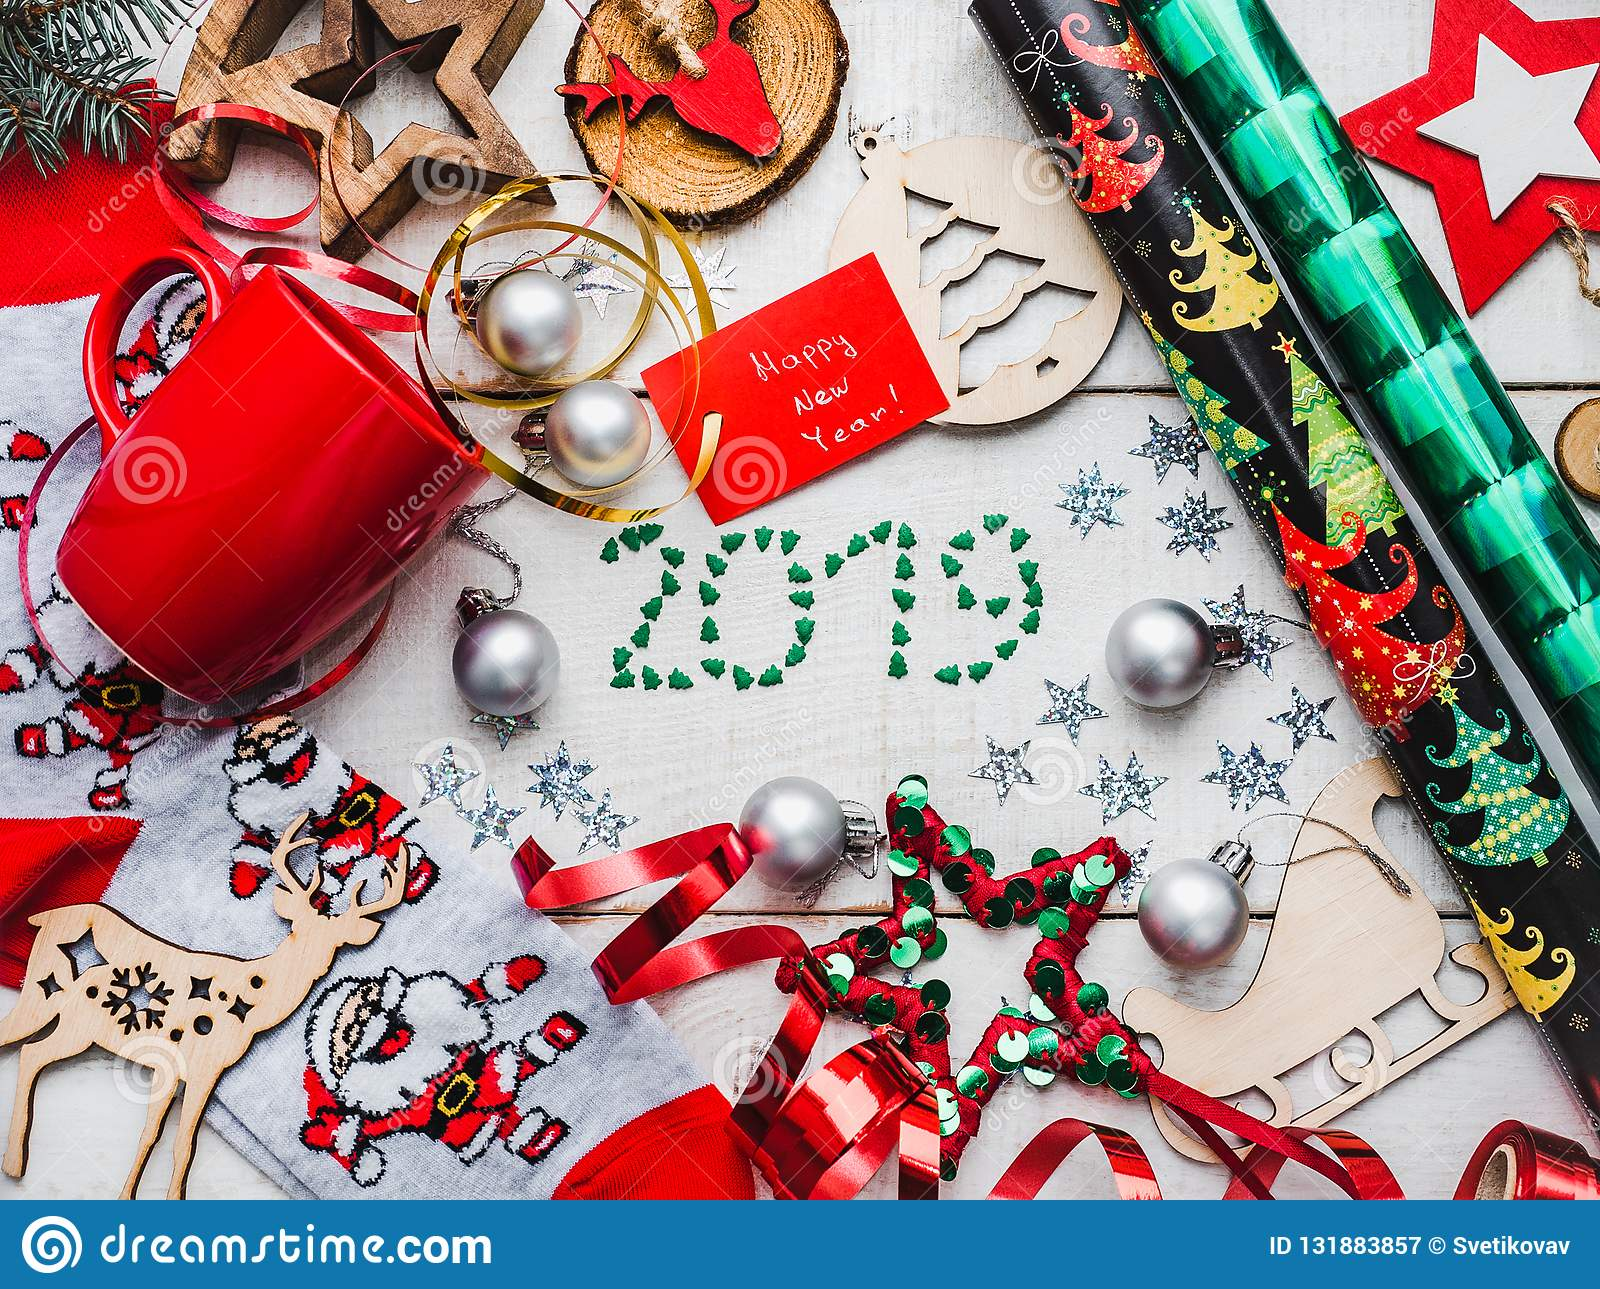 Happy New Year Greeting Card. Colorful Christmas ...